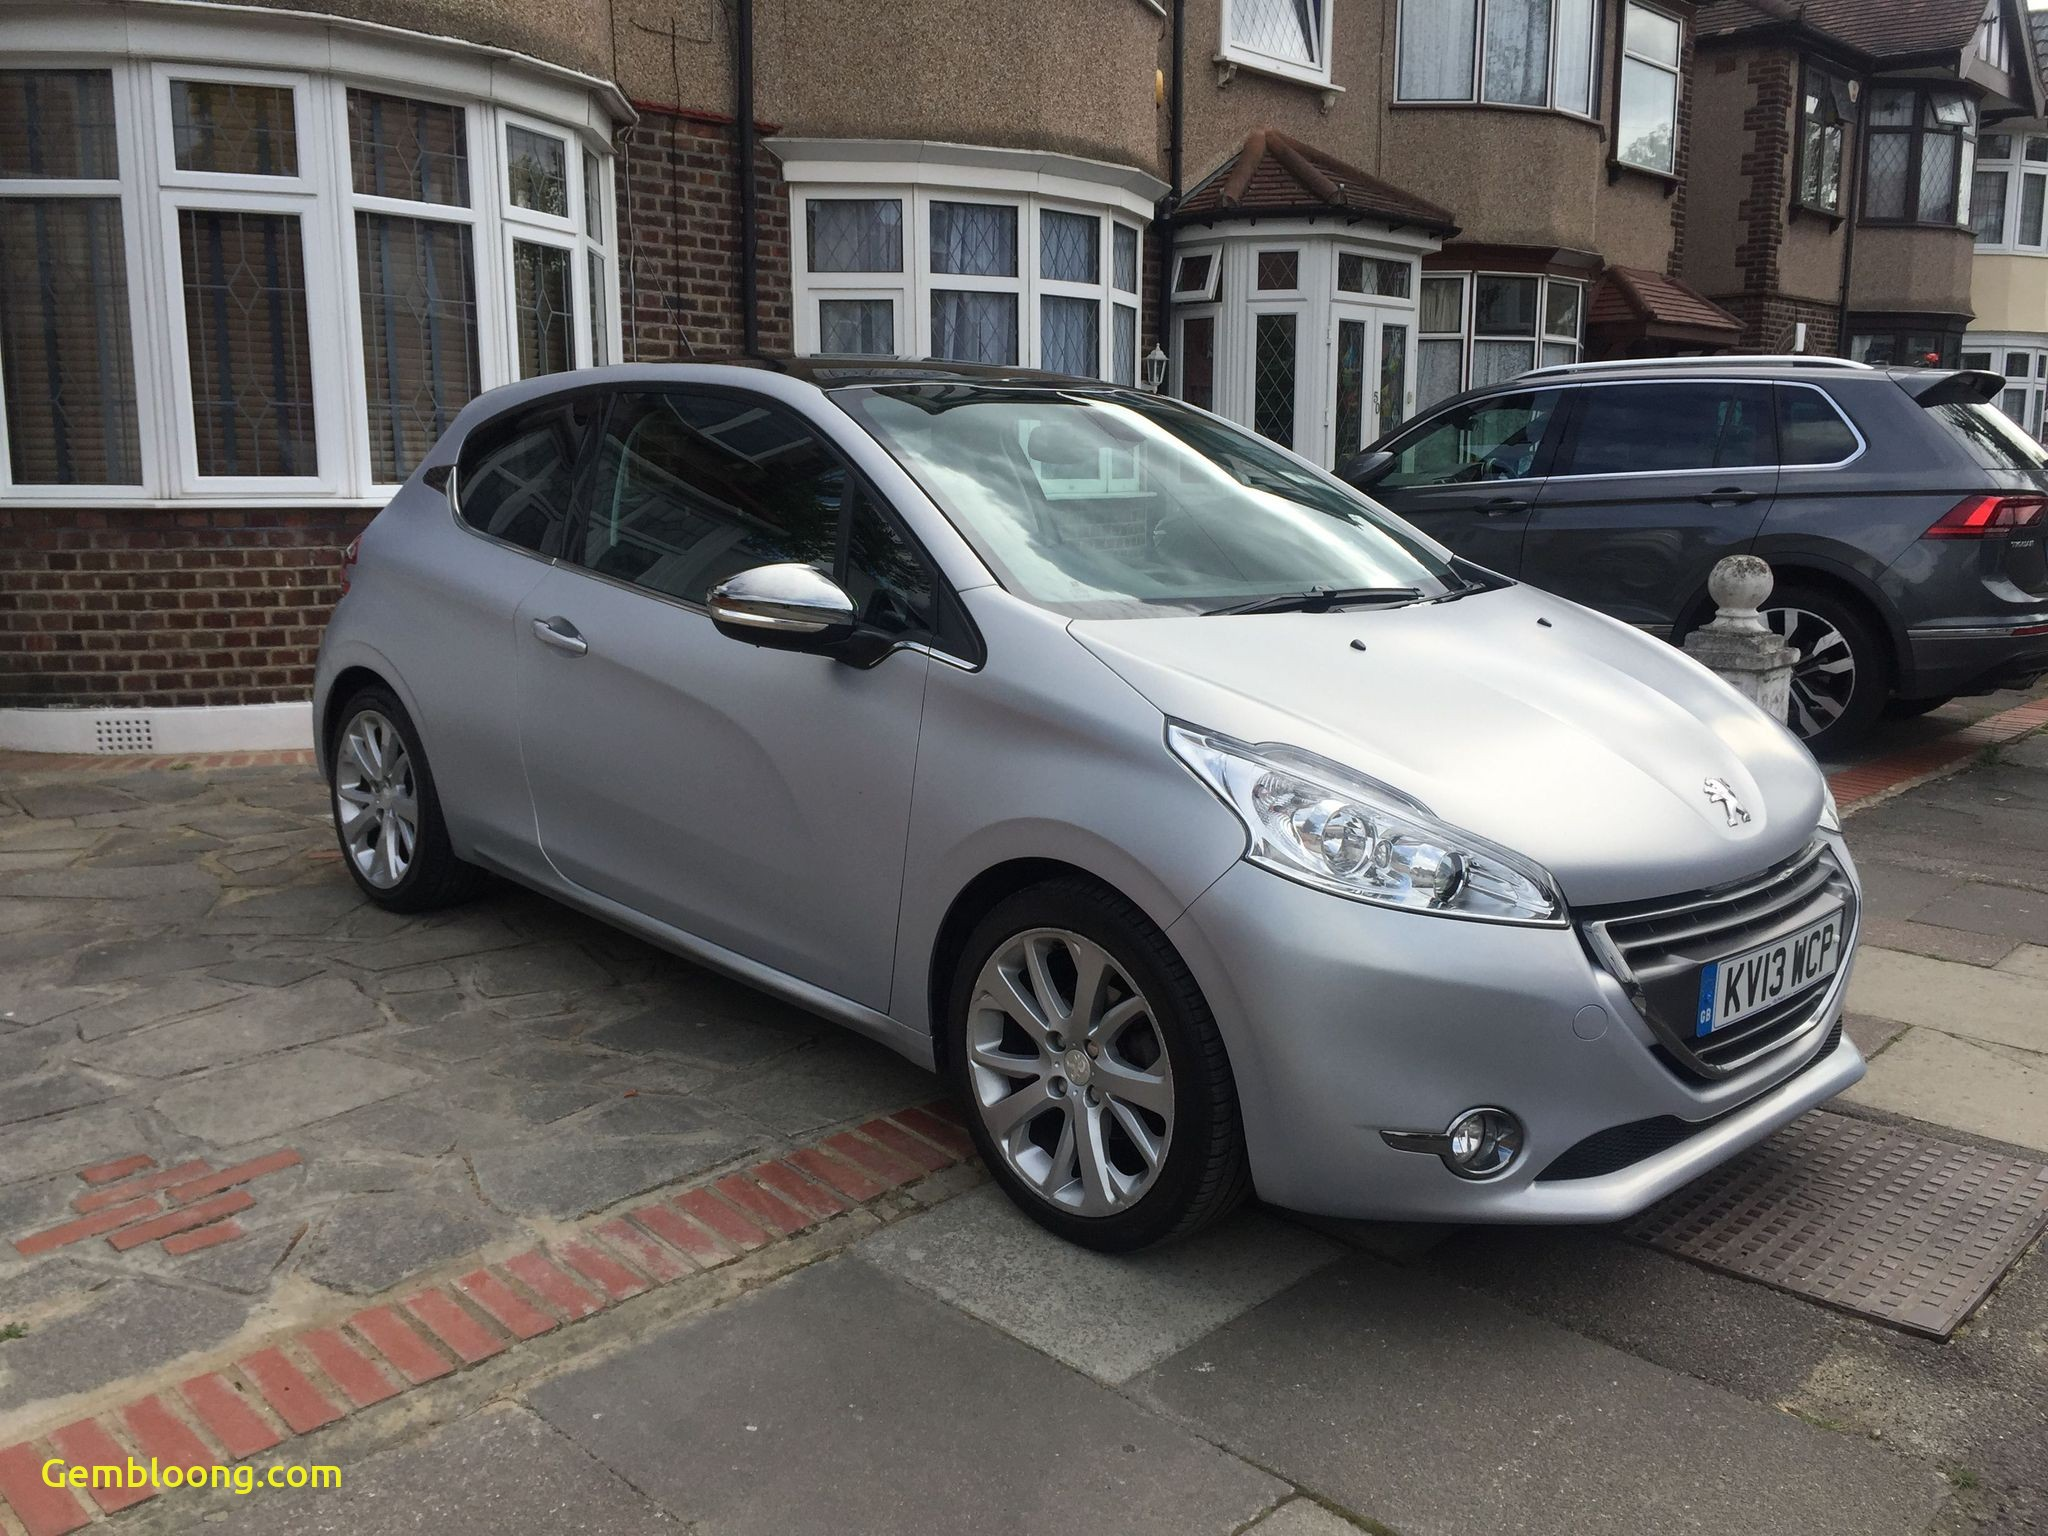 Cars for Sale Near Me Under 4000 Inspirational Cheap Cars for Sale On Auto Trader Uk